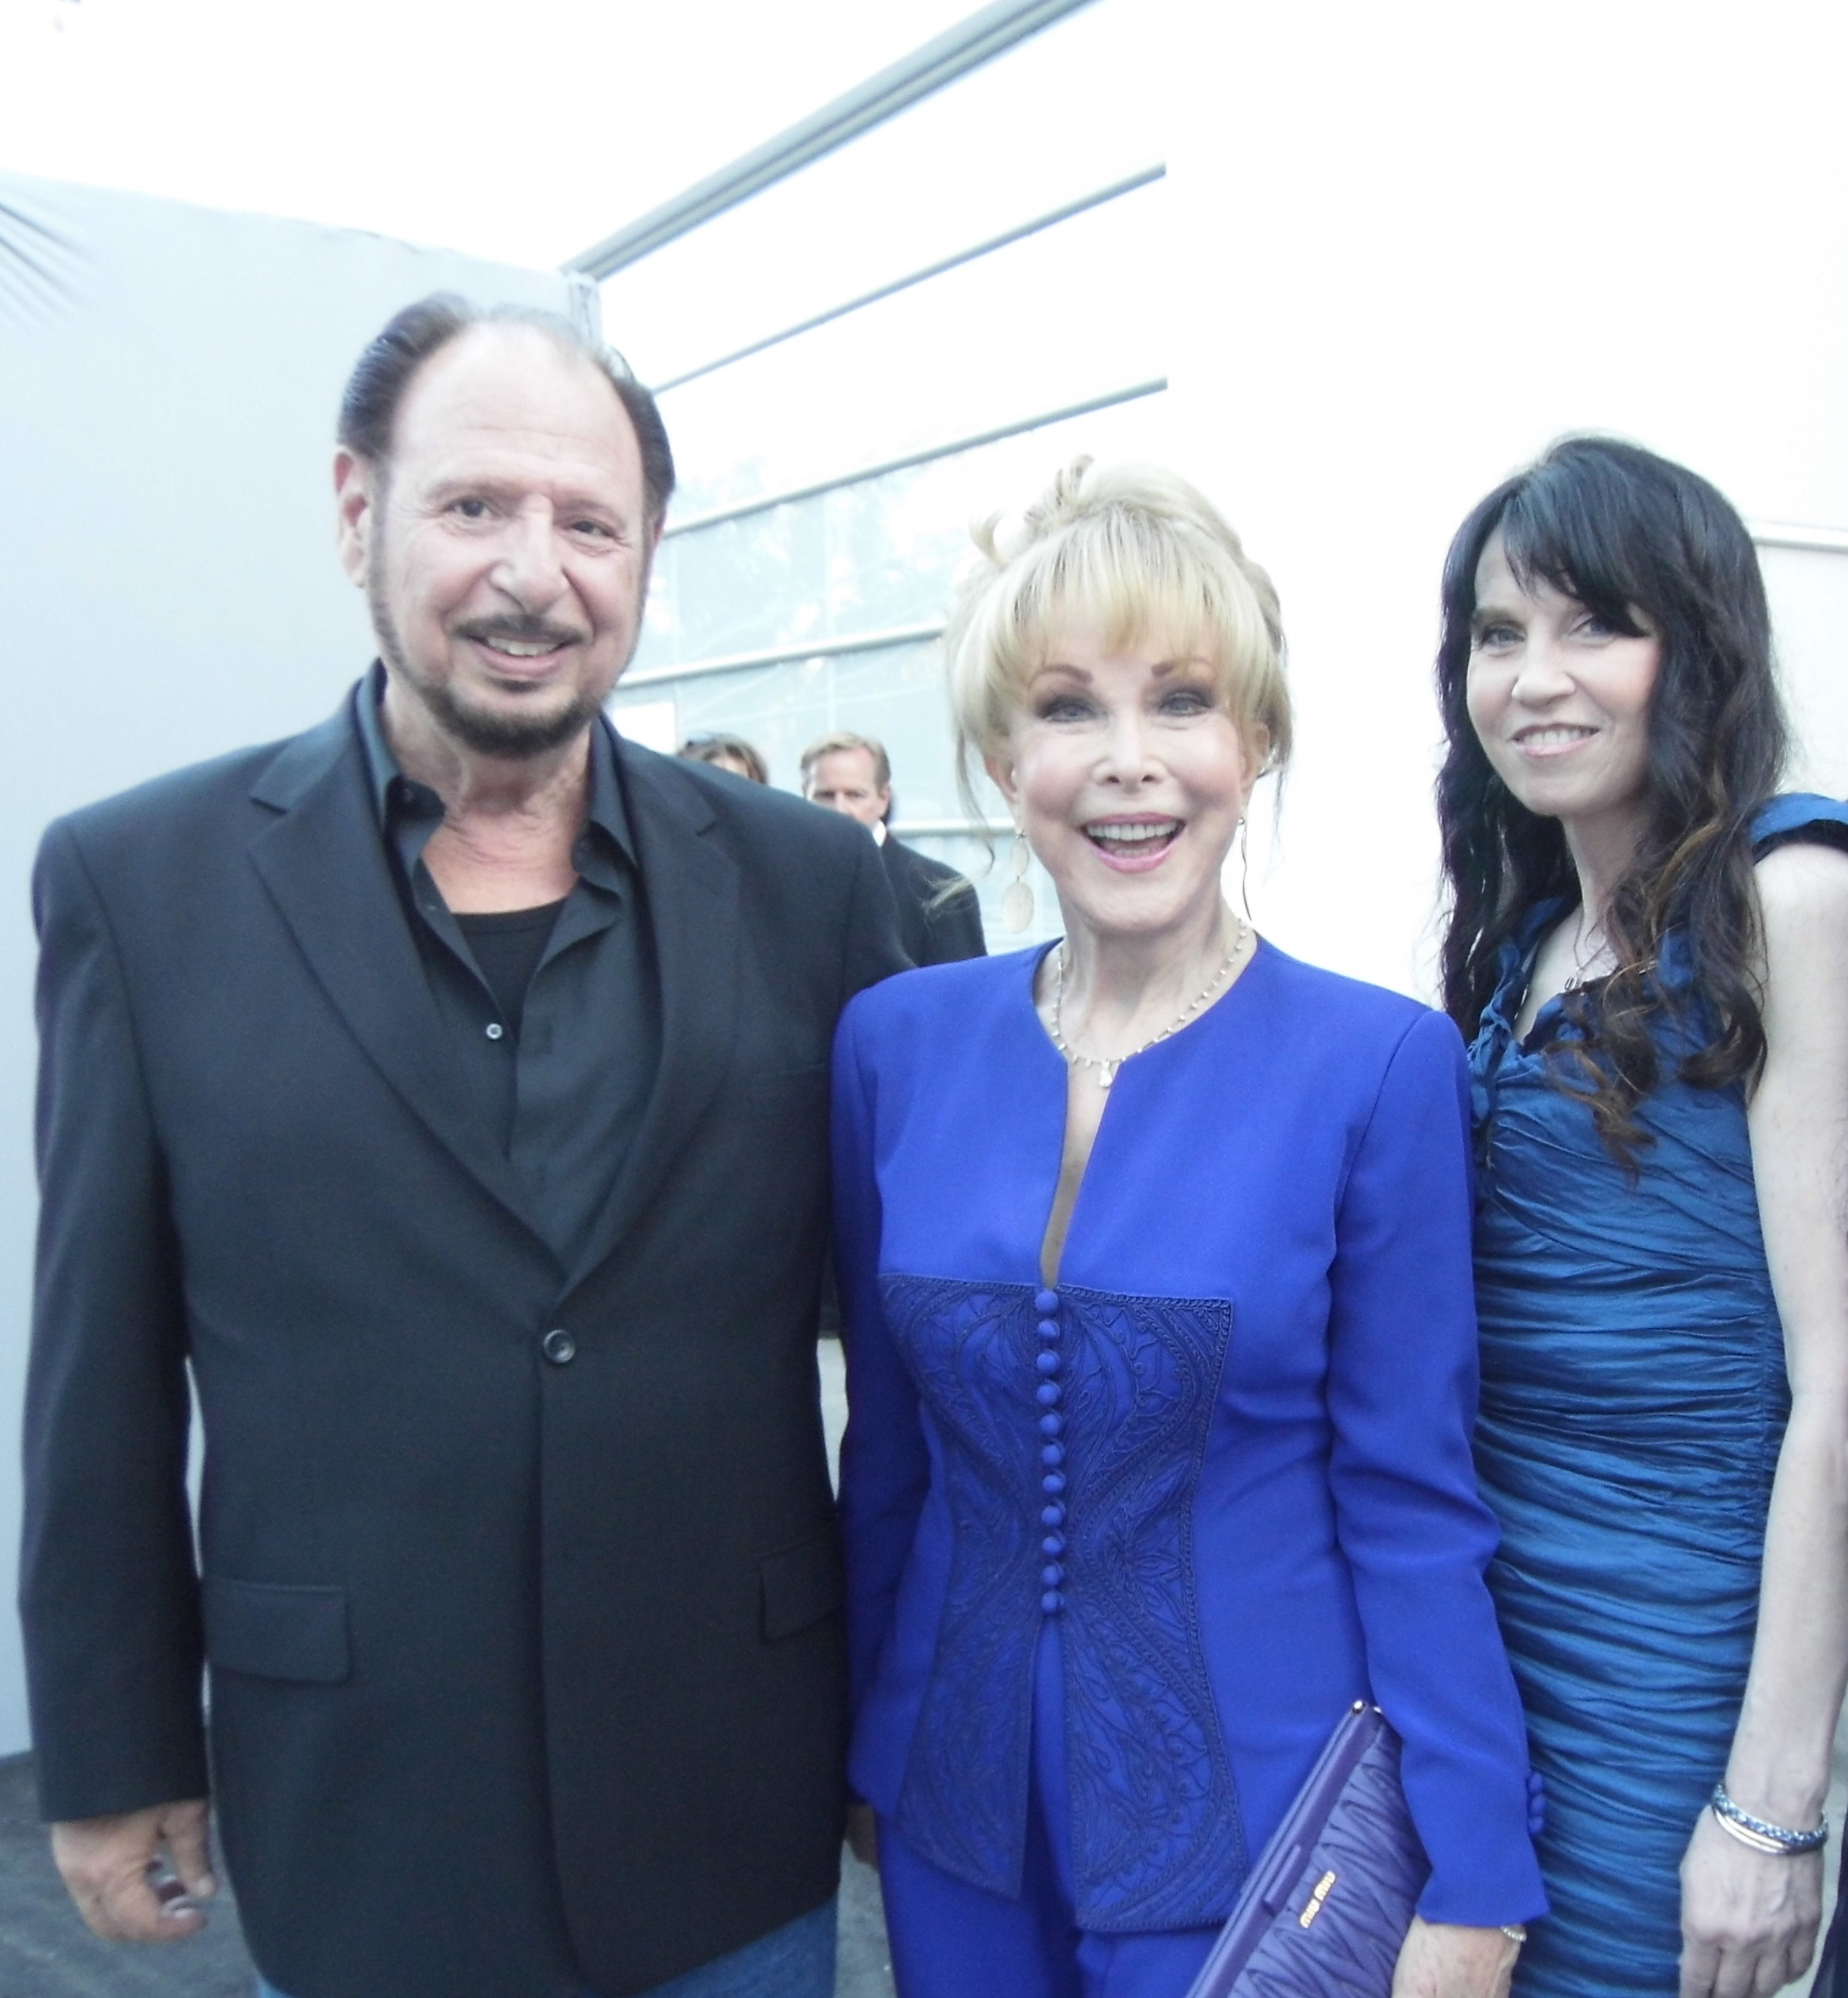 Denny Randell, Barbara Eden and Biddy Schippers at the Hollywood Bowl 2014 Hall Of Fame Red Carpet Event